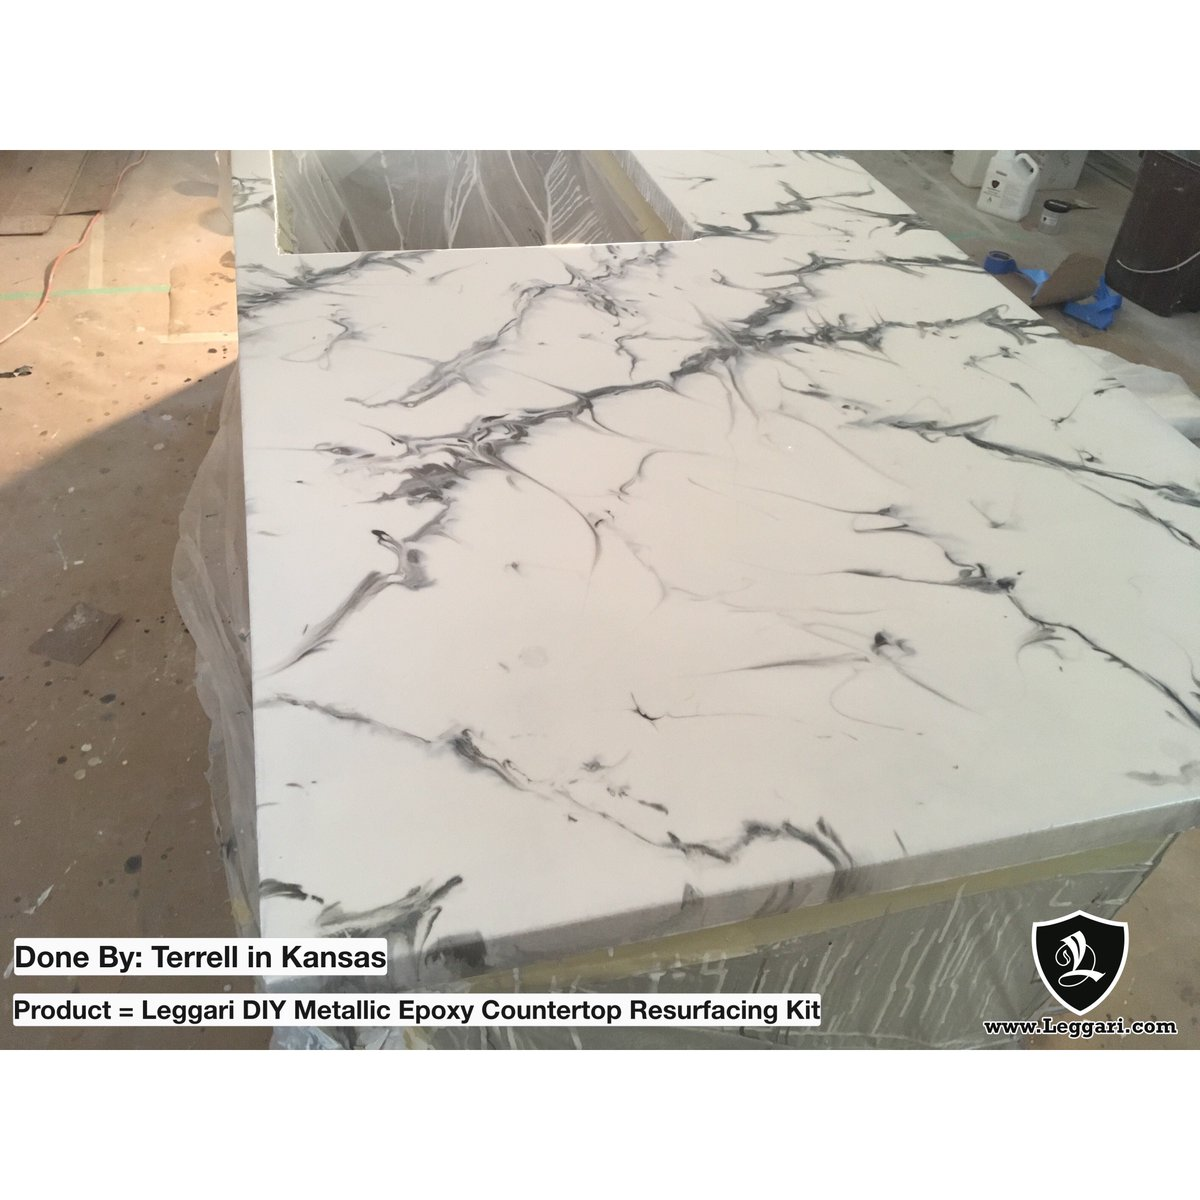 Leggari Products On Twitter Loving Terrell S Epoxy Countertop Creation It Replicates White Marble With Veins Will Be A Hit For Years To Come Nice Work Terrell Customerinstall Epoxycountertop Epoxy Epoxycoating Marble